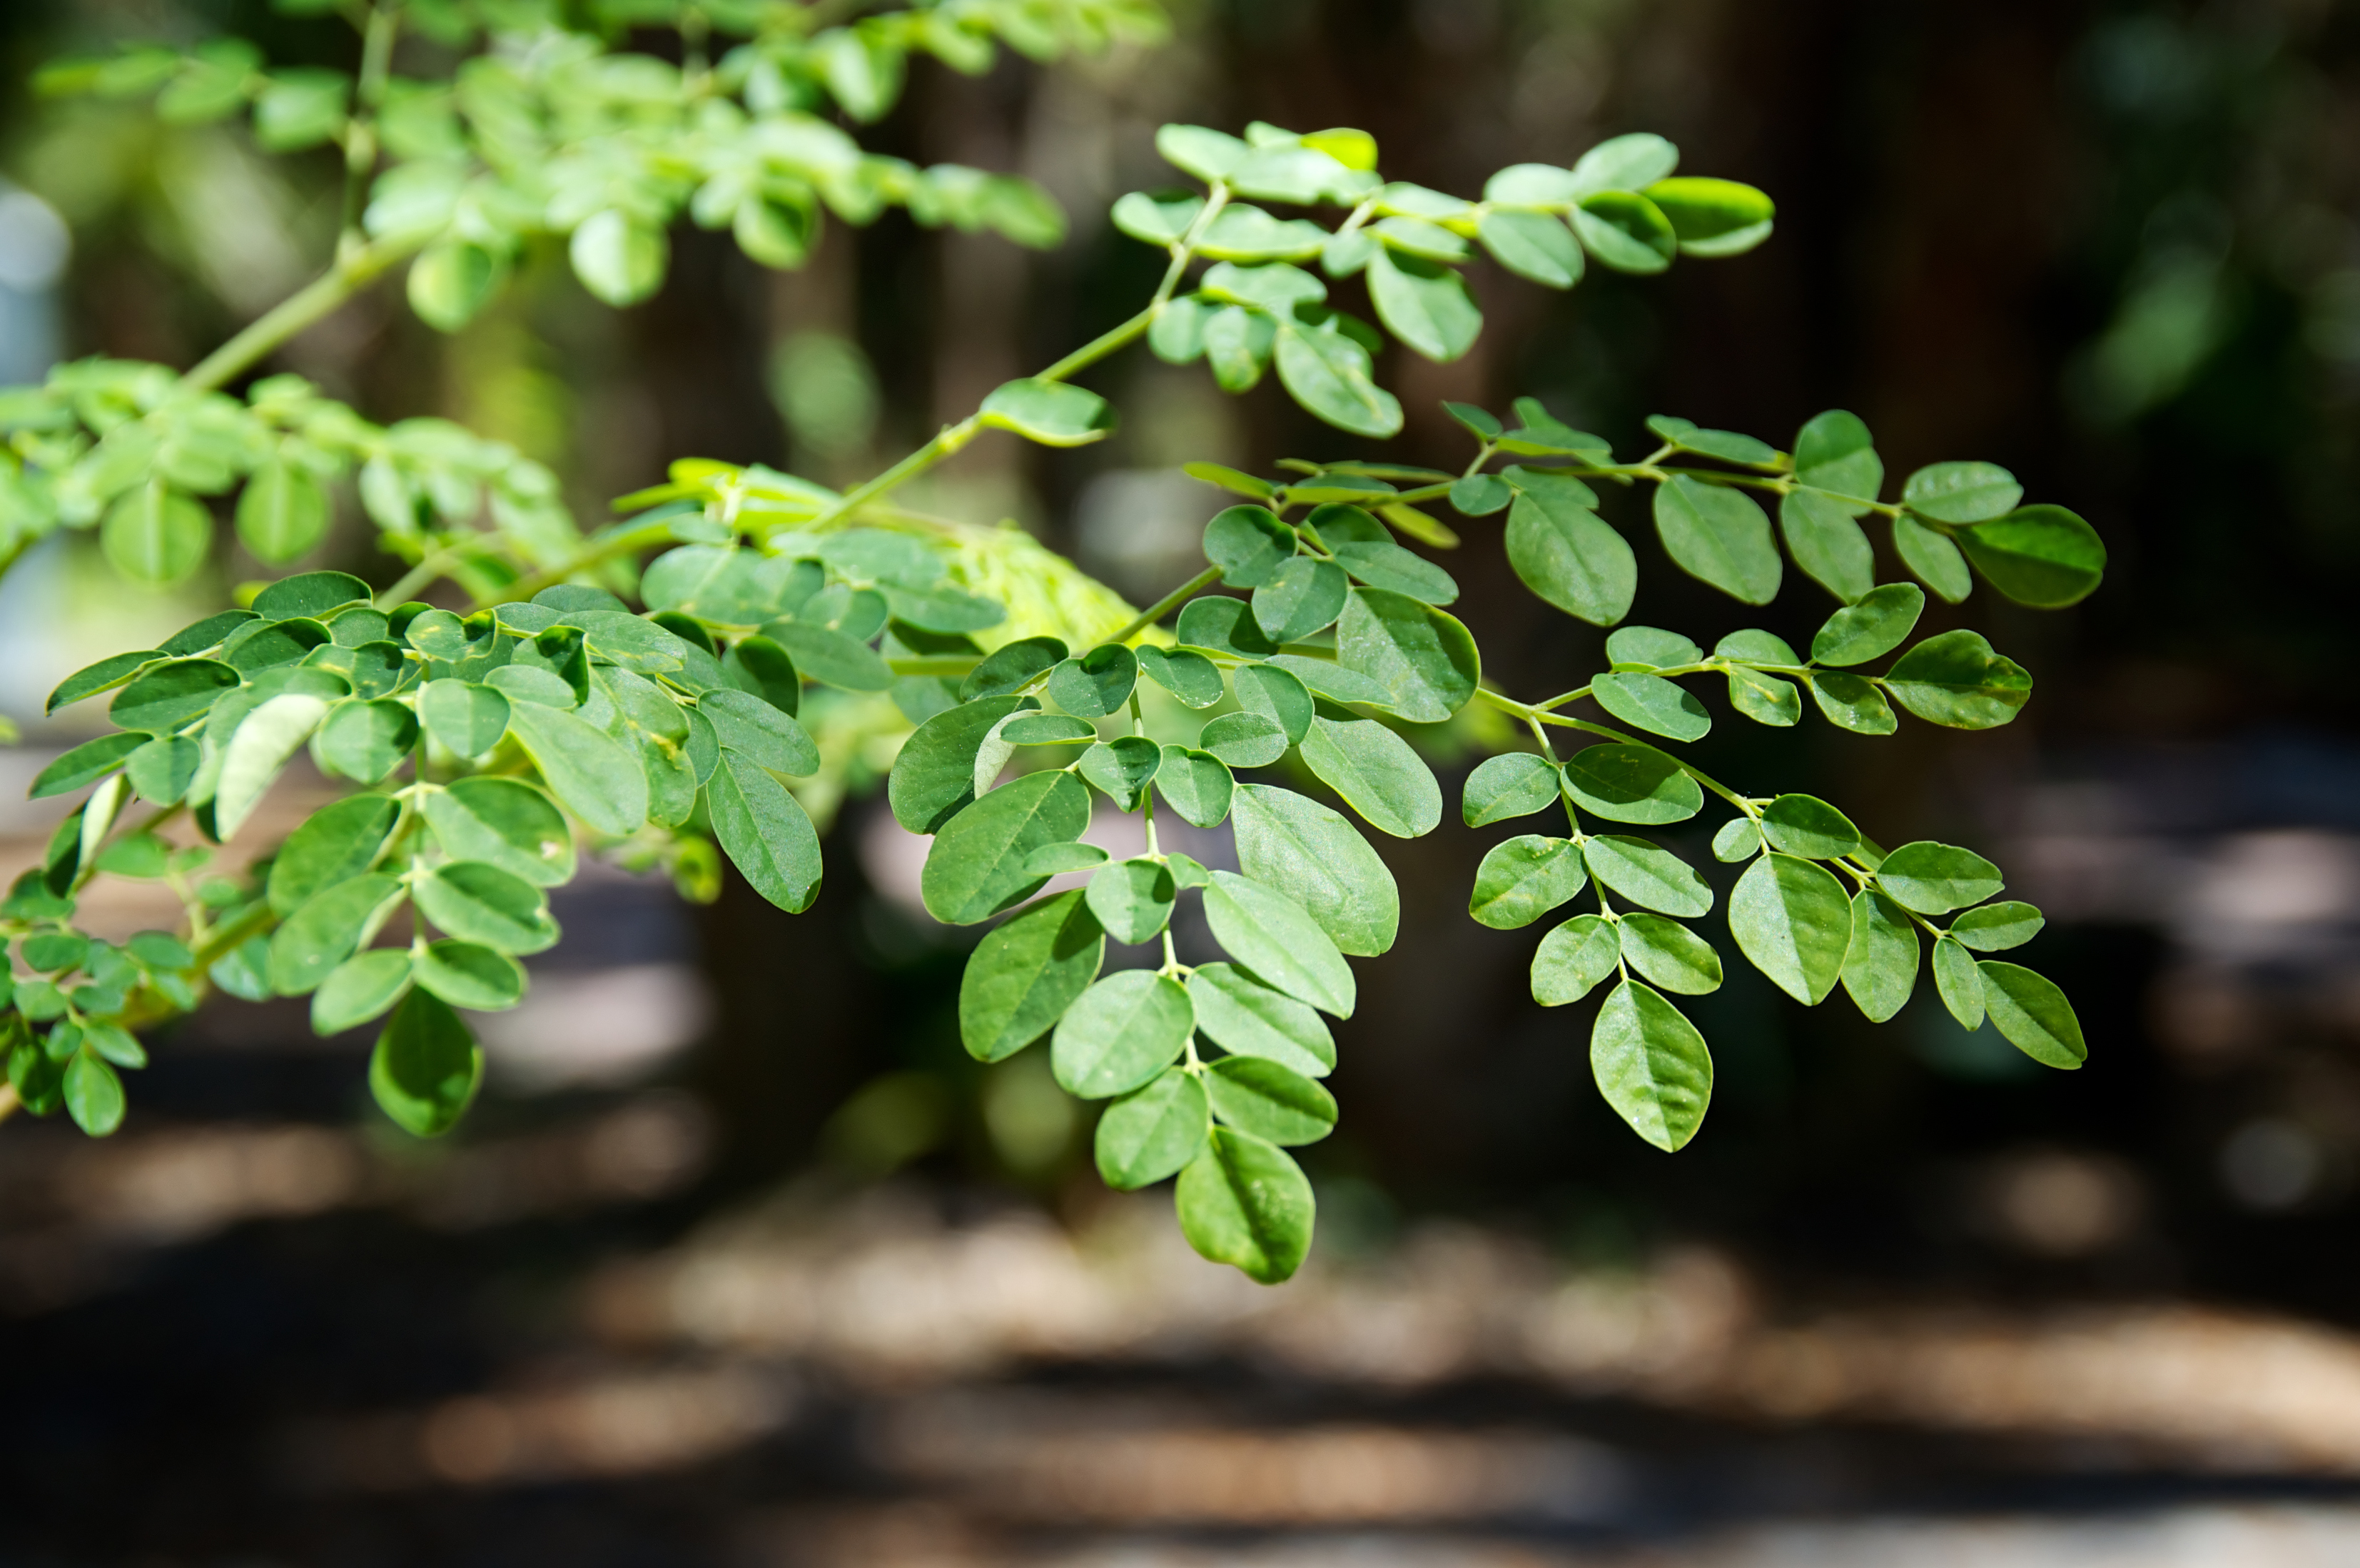 eye level view of the leaves at the top of a young moringa tree, used for alternative medicine.